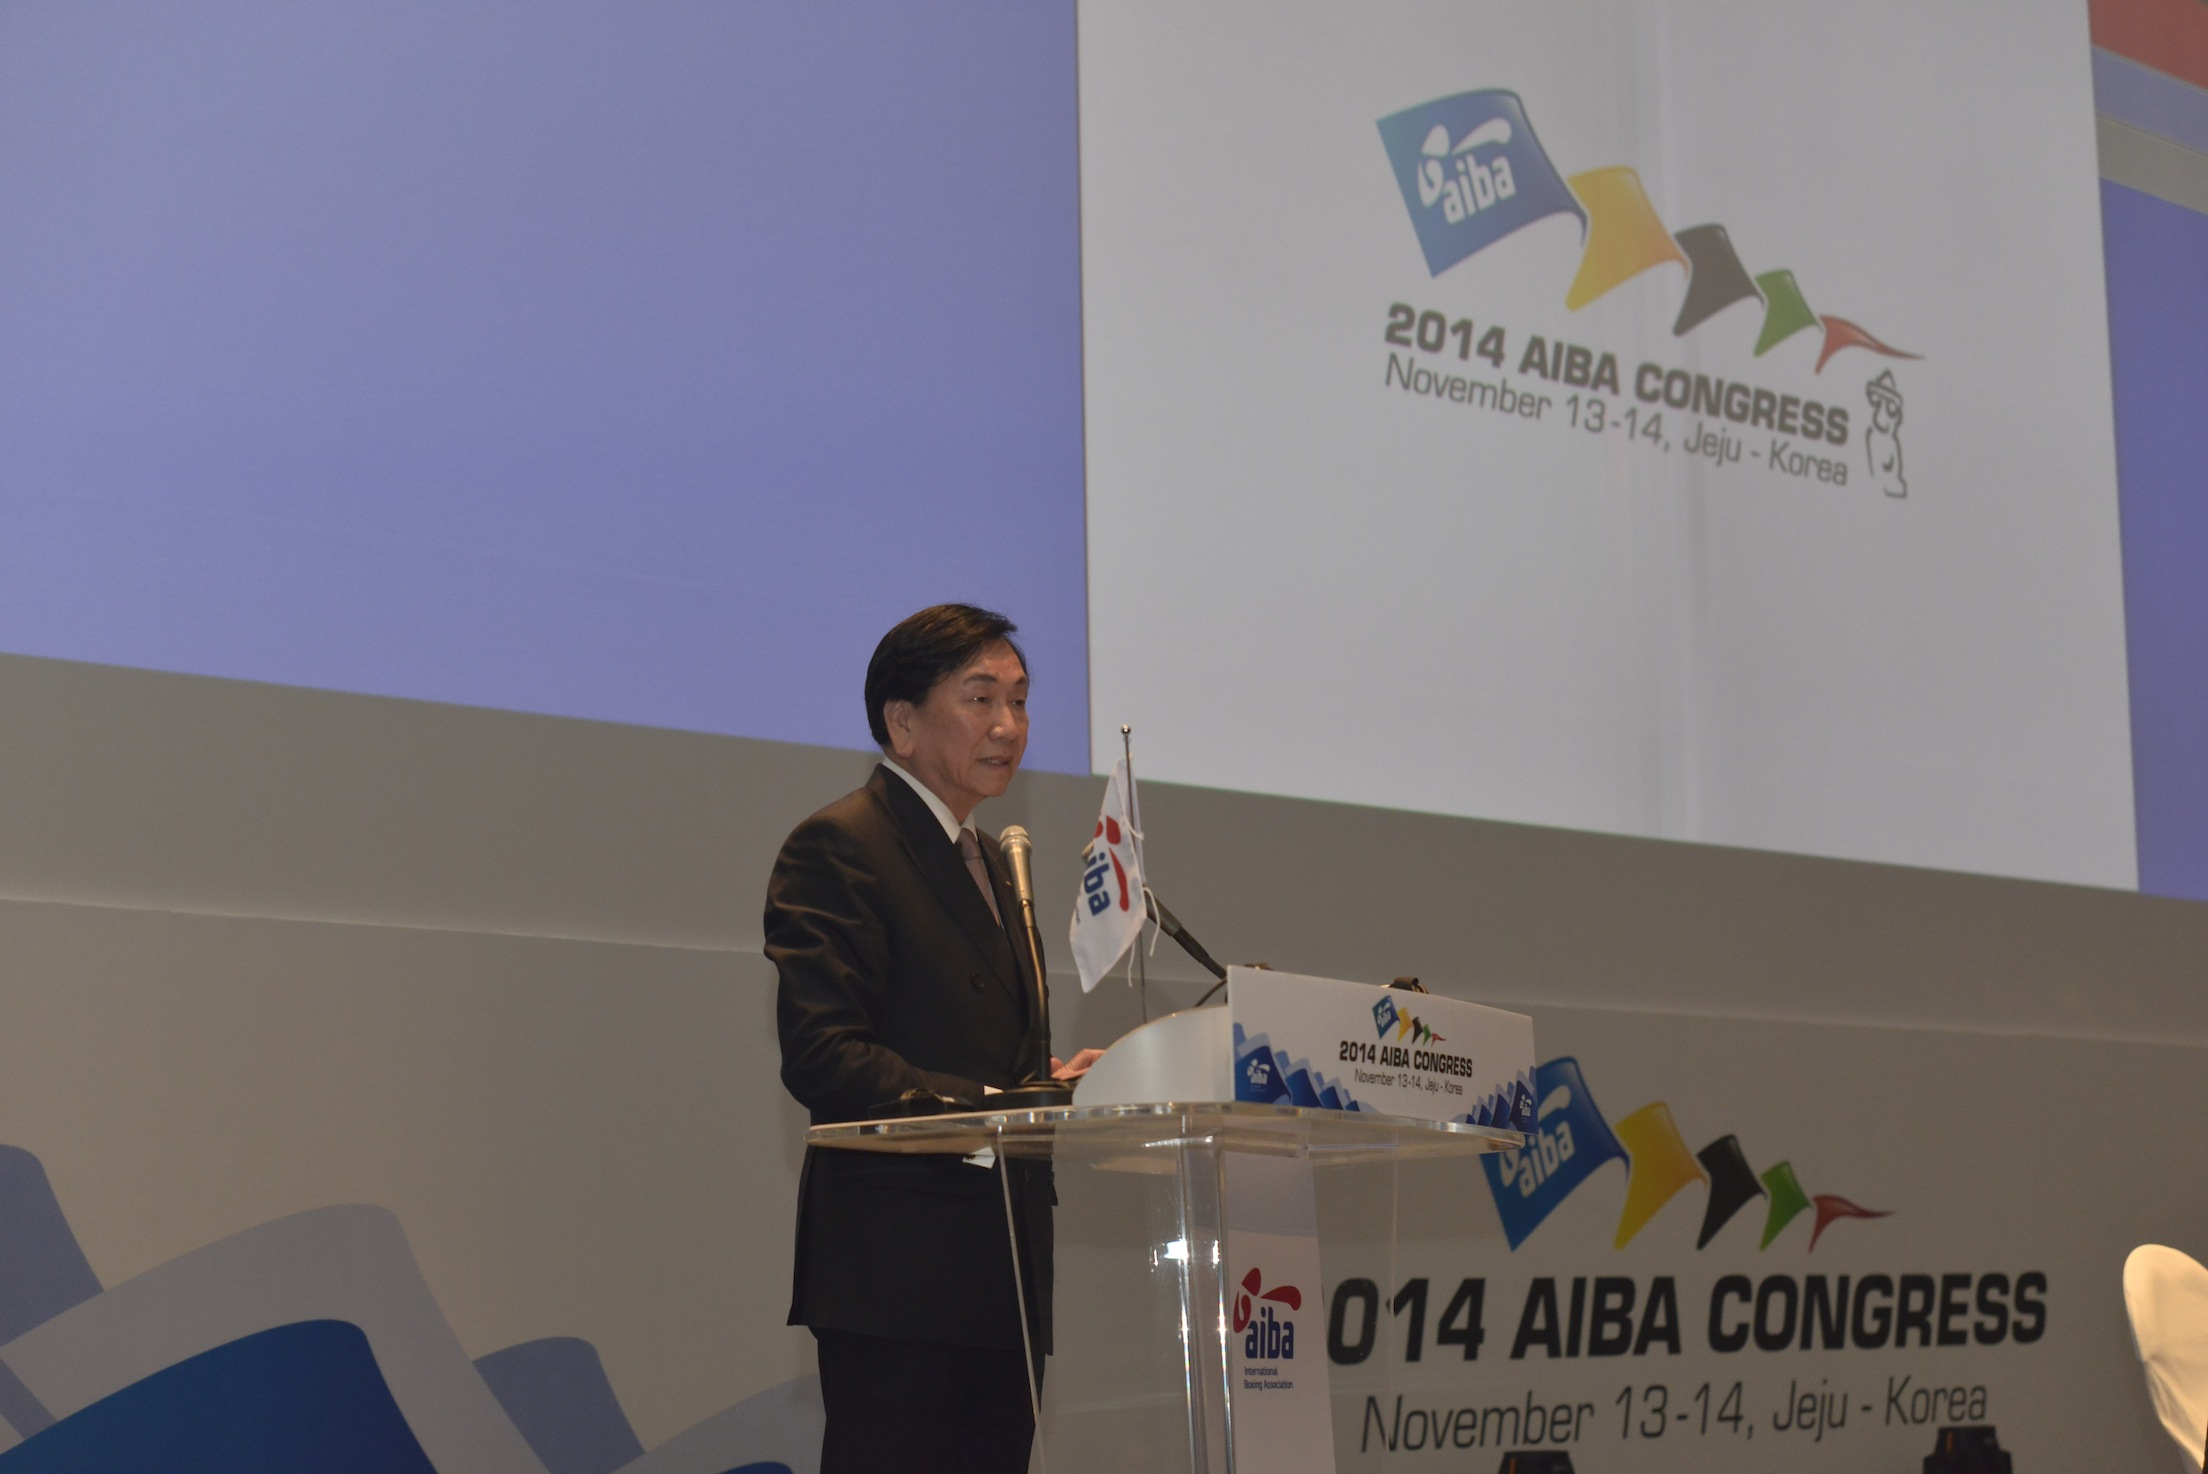 C K Wu, President of the AIBA, insists the IOA is not complying with the Olympic Charter ©AIBA